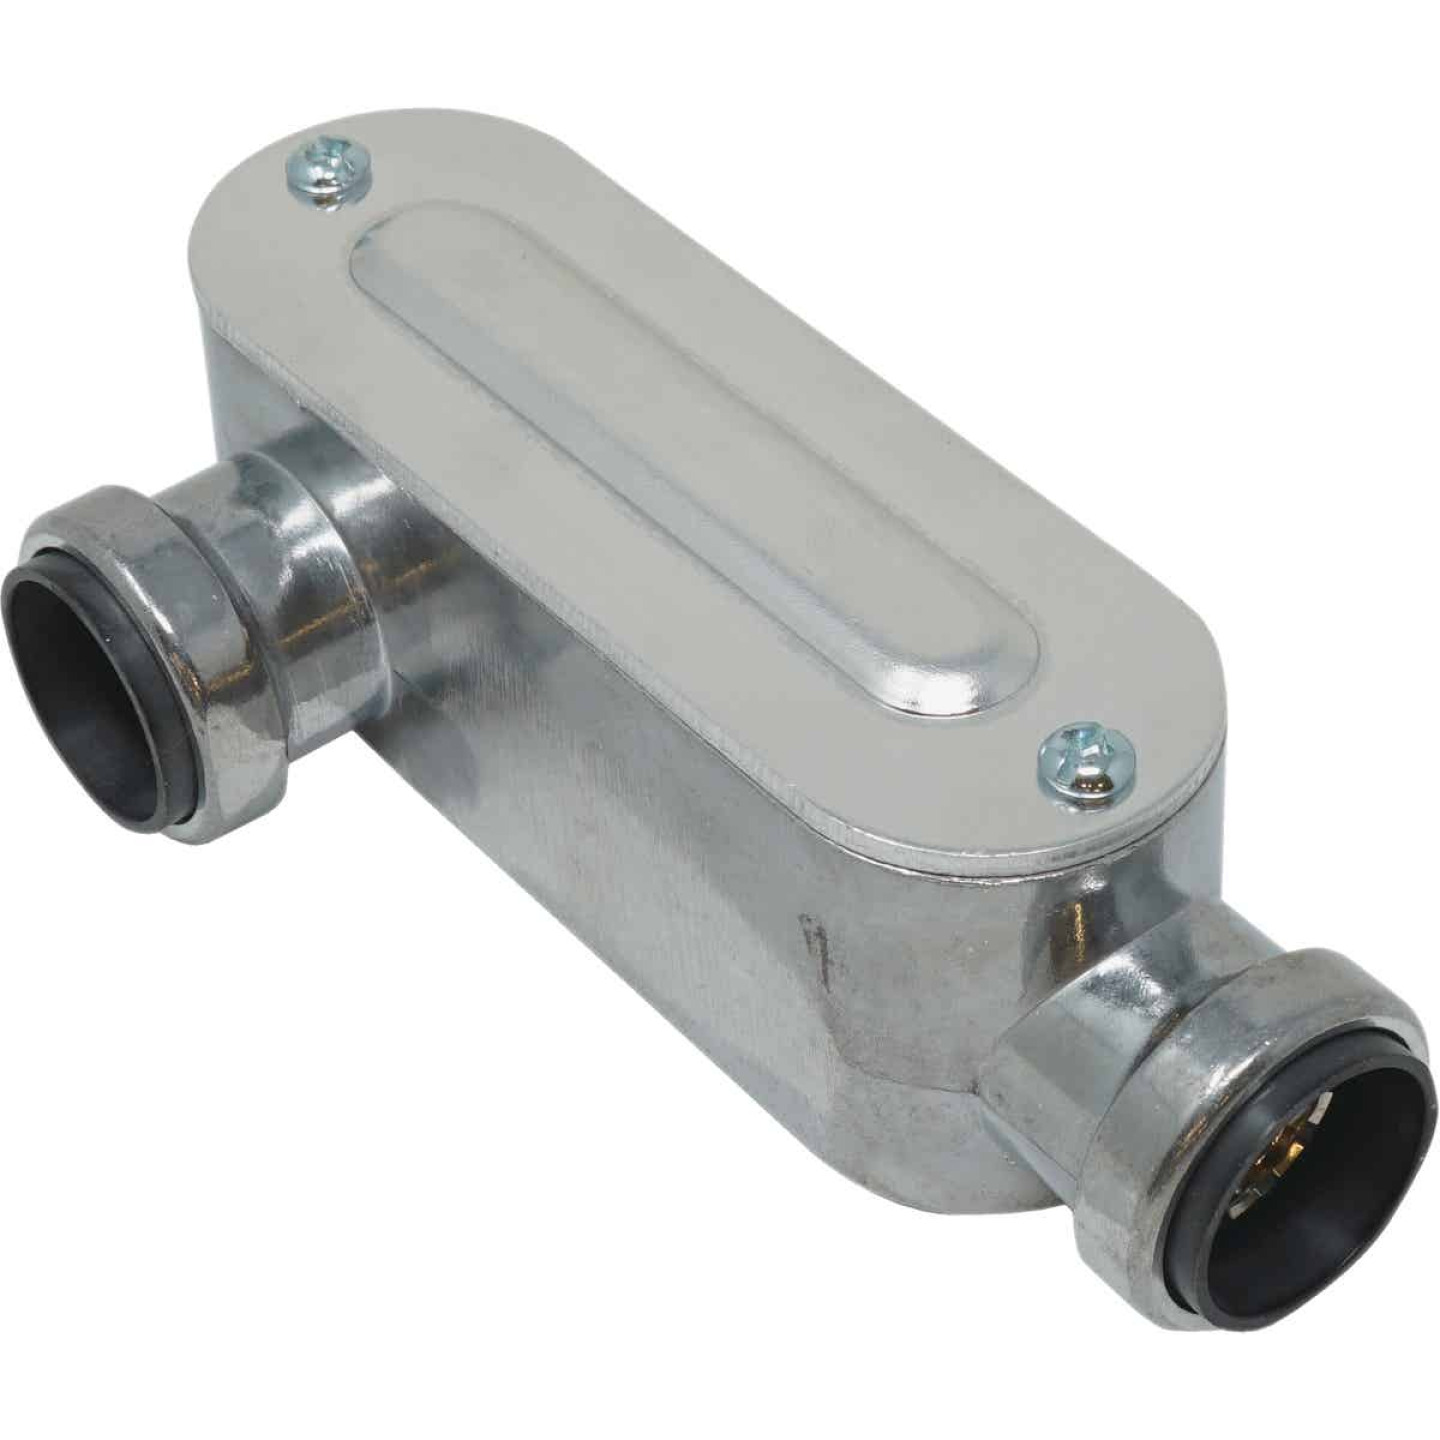 Southwire SimPush 3/4 In. EMT Push-To-Install Type-LR Conduit Body Image 1